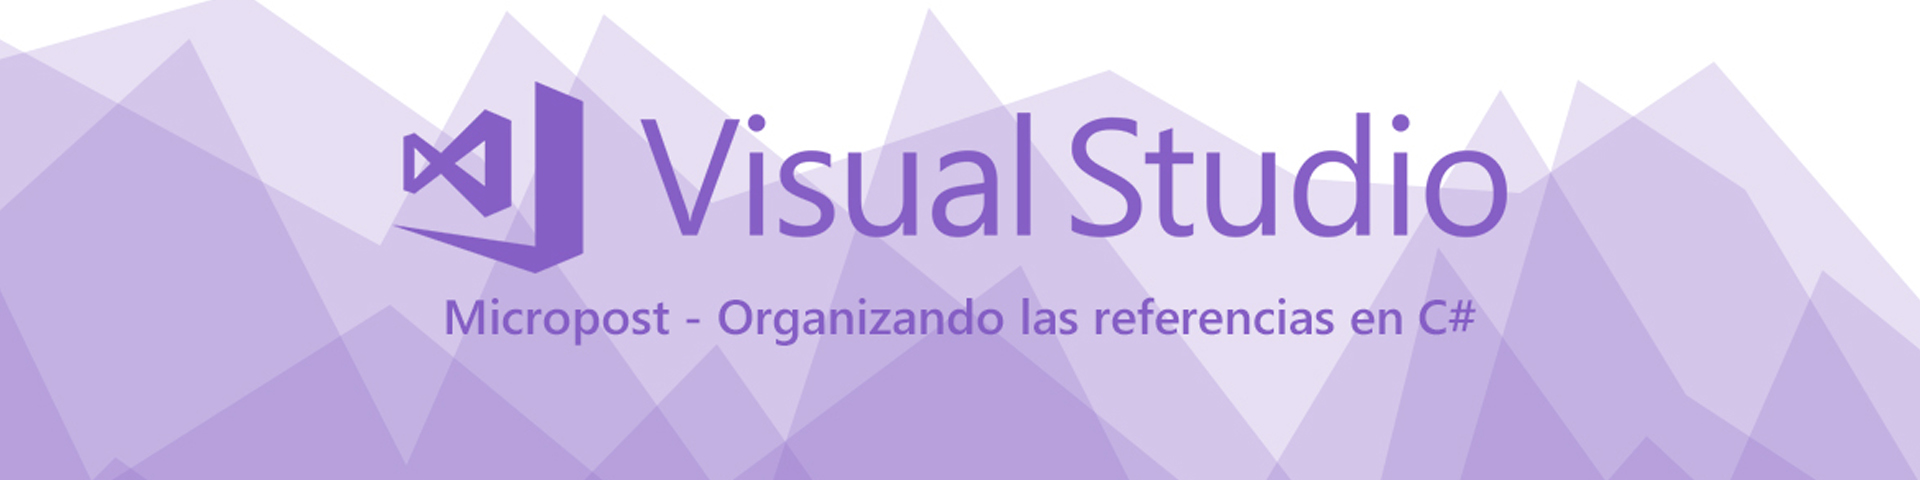 [Micro-Post] Organizando las referencias en C#